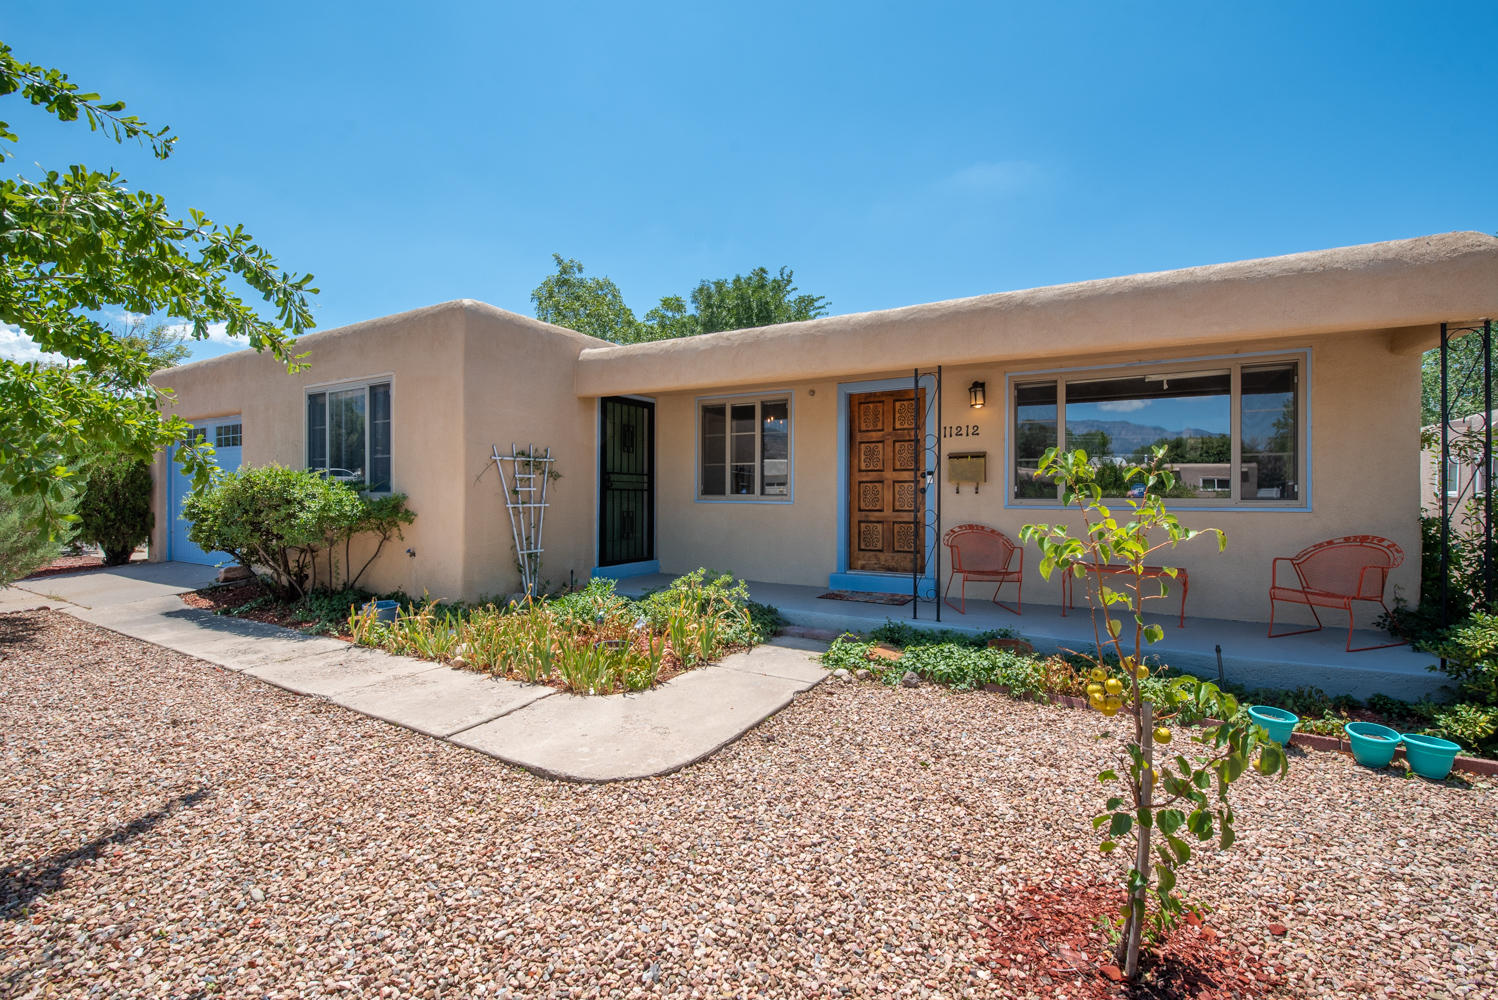 Great home in NE heights.  Lovely remodeled  kitchen with Quartz Countertops, remodeled laundry room, new Dishwasher, water heater and garbage disposal (2020), Newer Microwave, Range, Hood Vent, Washer and Dryer (2017), Newer roof, electrical panel and REFRIGERATED AIR (2017),  Trees: 2x Mature Pomegranate Bushes, Mature Pecan, Apple and Almond trees, Young Pear tree, 2 lockable sheds in back: 1 single level, 1 tall ,with loft, 6 large garden boxes, Newer energy efficient windows , Front and back porches refinished with non-slip paint, Front-side door upgraded with better door and a security gate added, ADT security system installed with sensors on nearly every door and window. Lockable storage closet in hallway with lots of extra shelving. Nest Thermostat & Ring Doorbell. Must See.